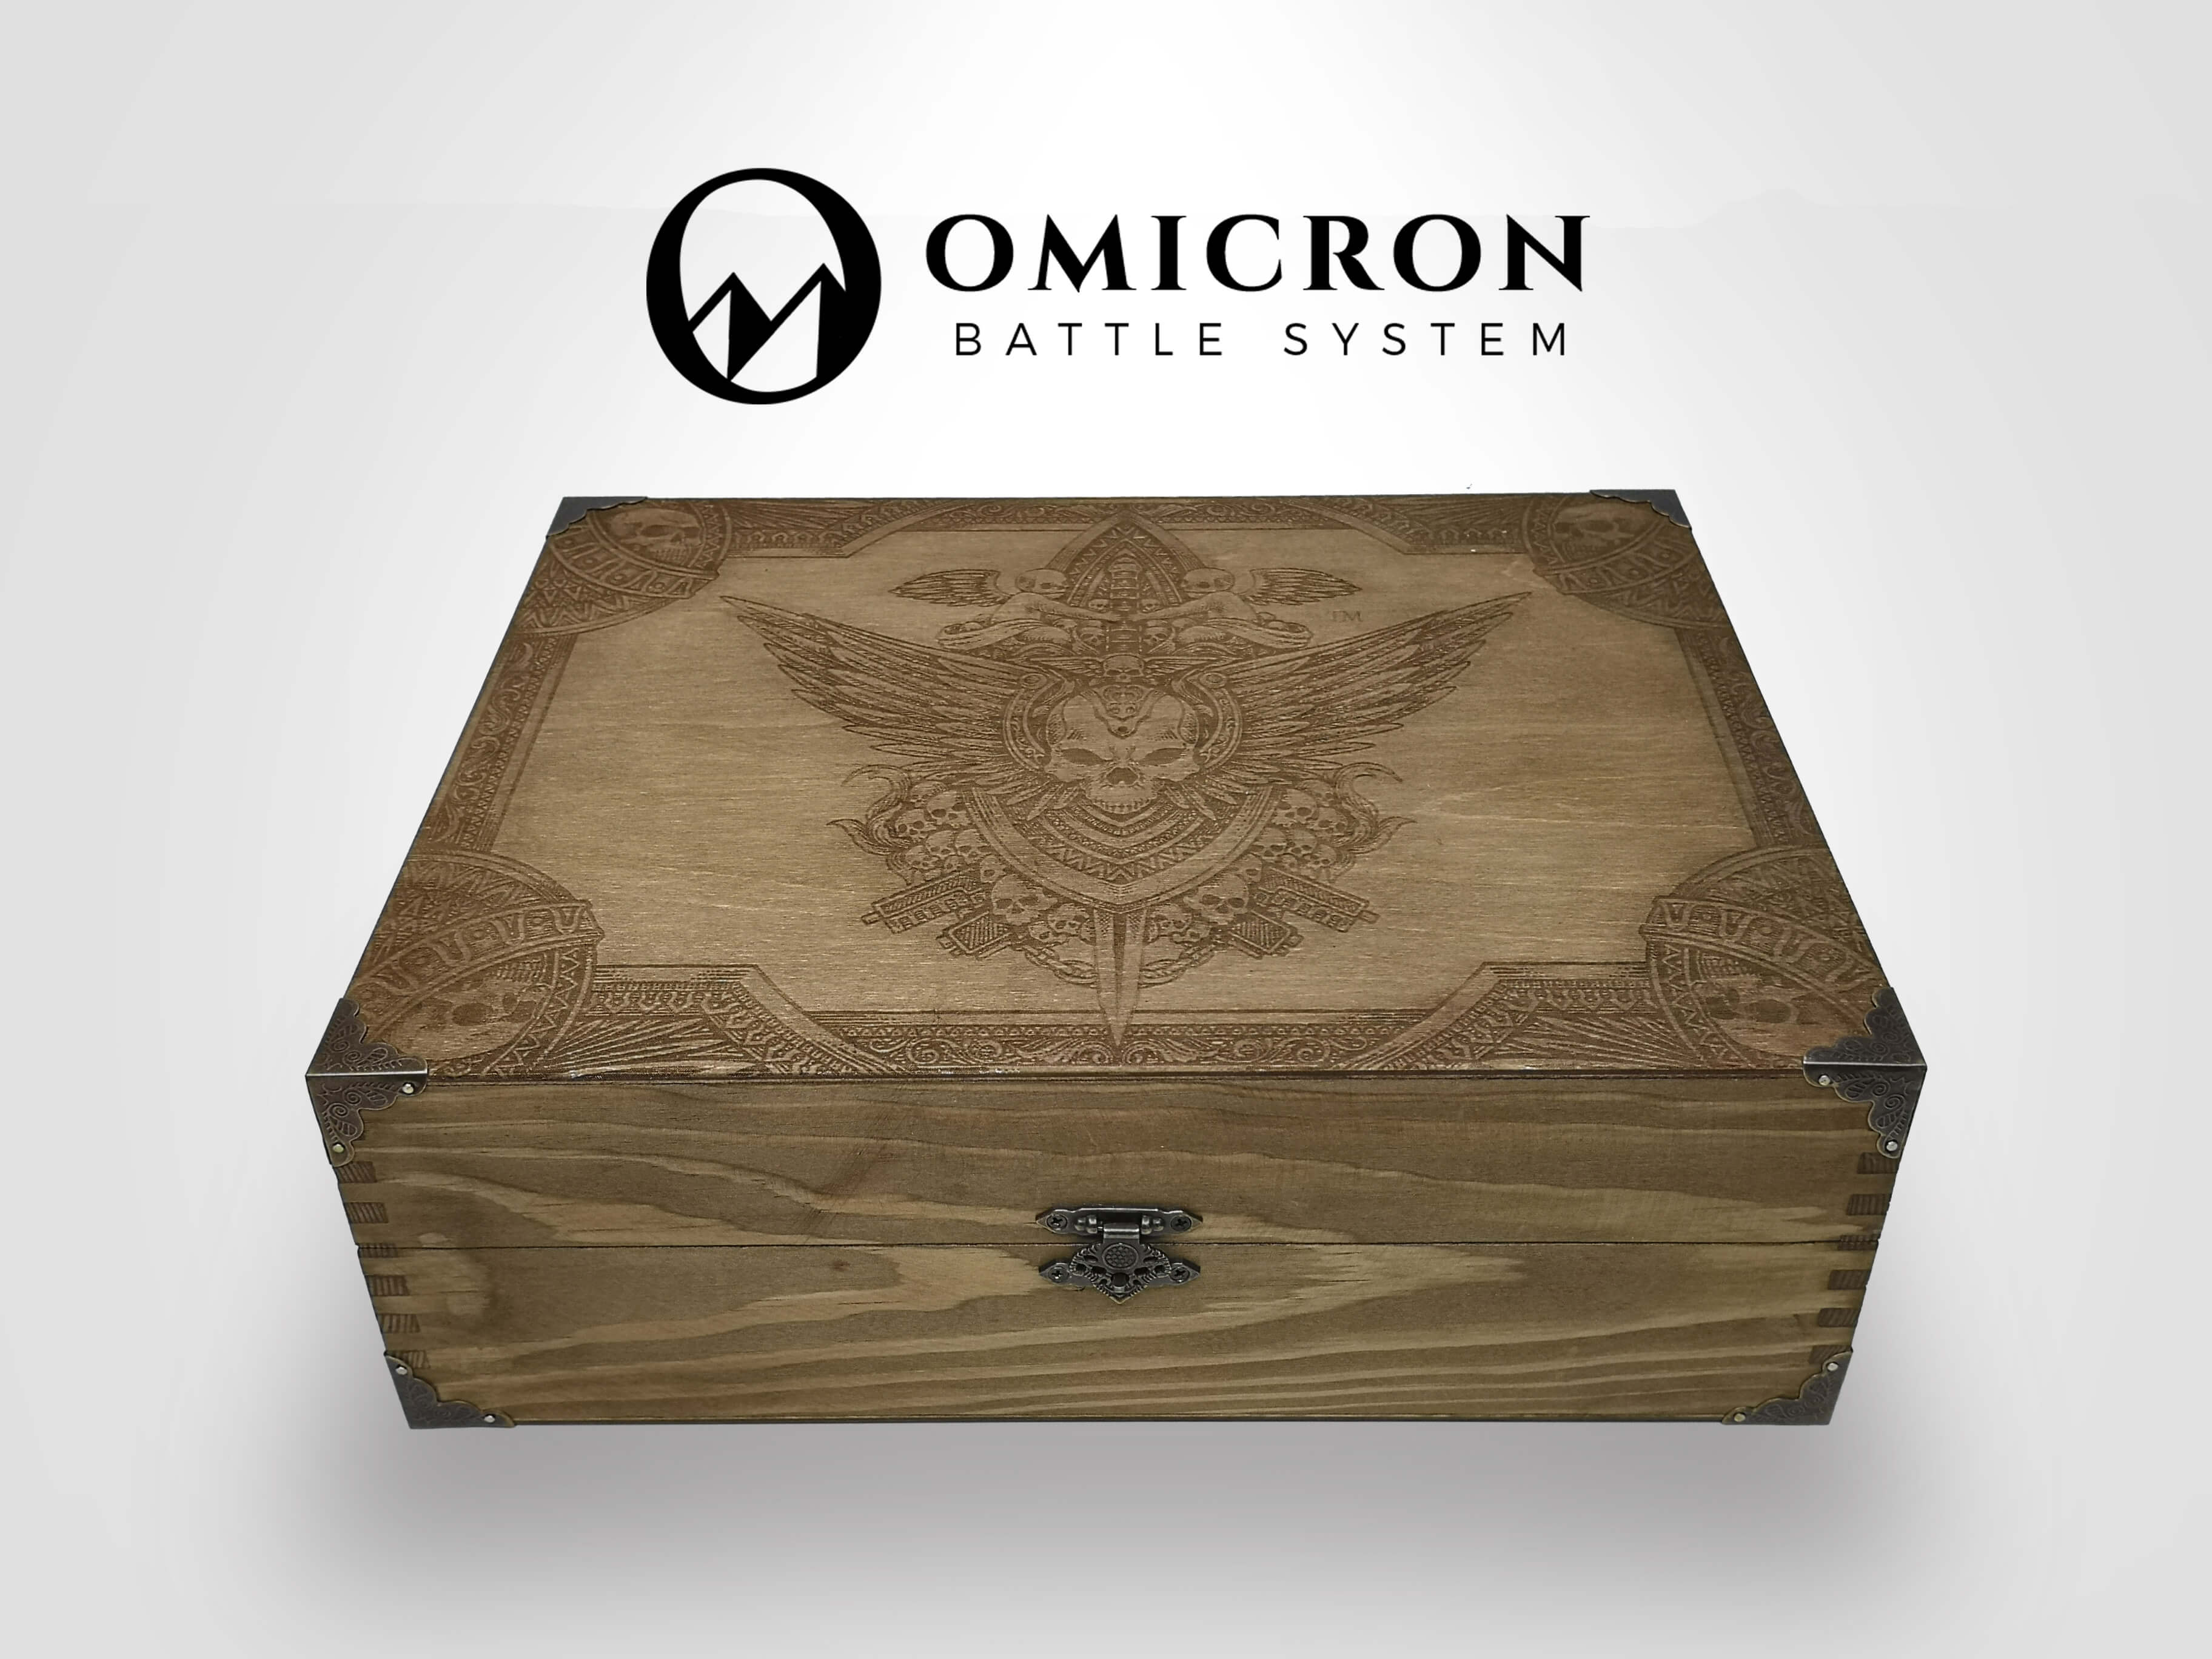 OMICRON Battle System - Organize Your Chaos in Style 4